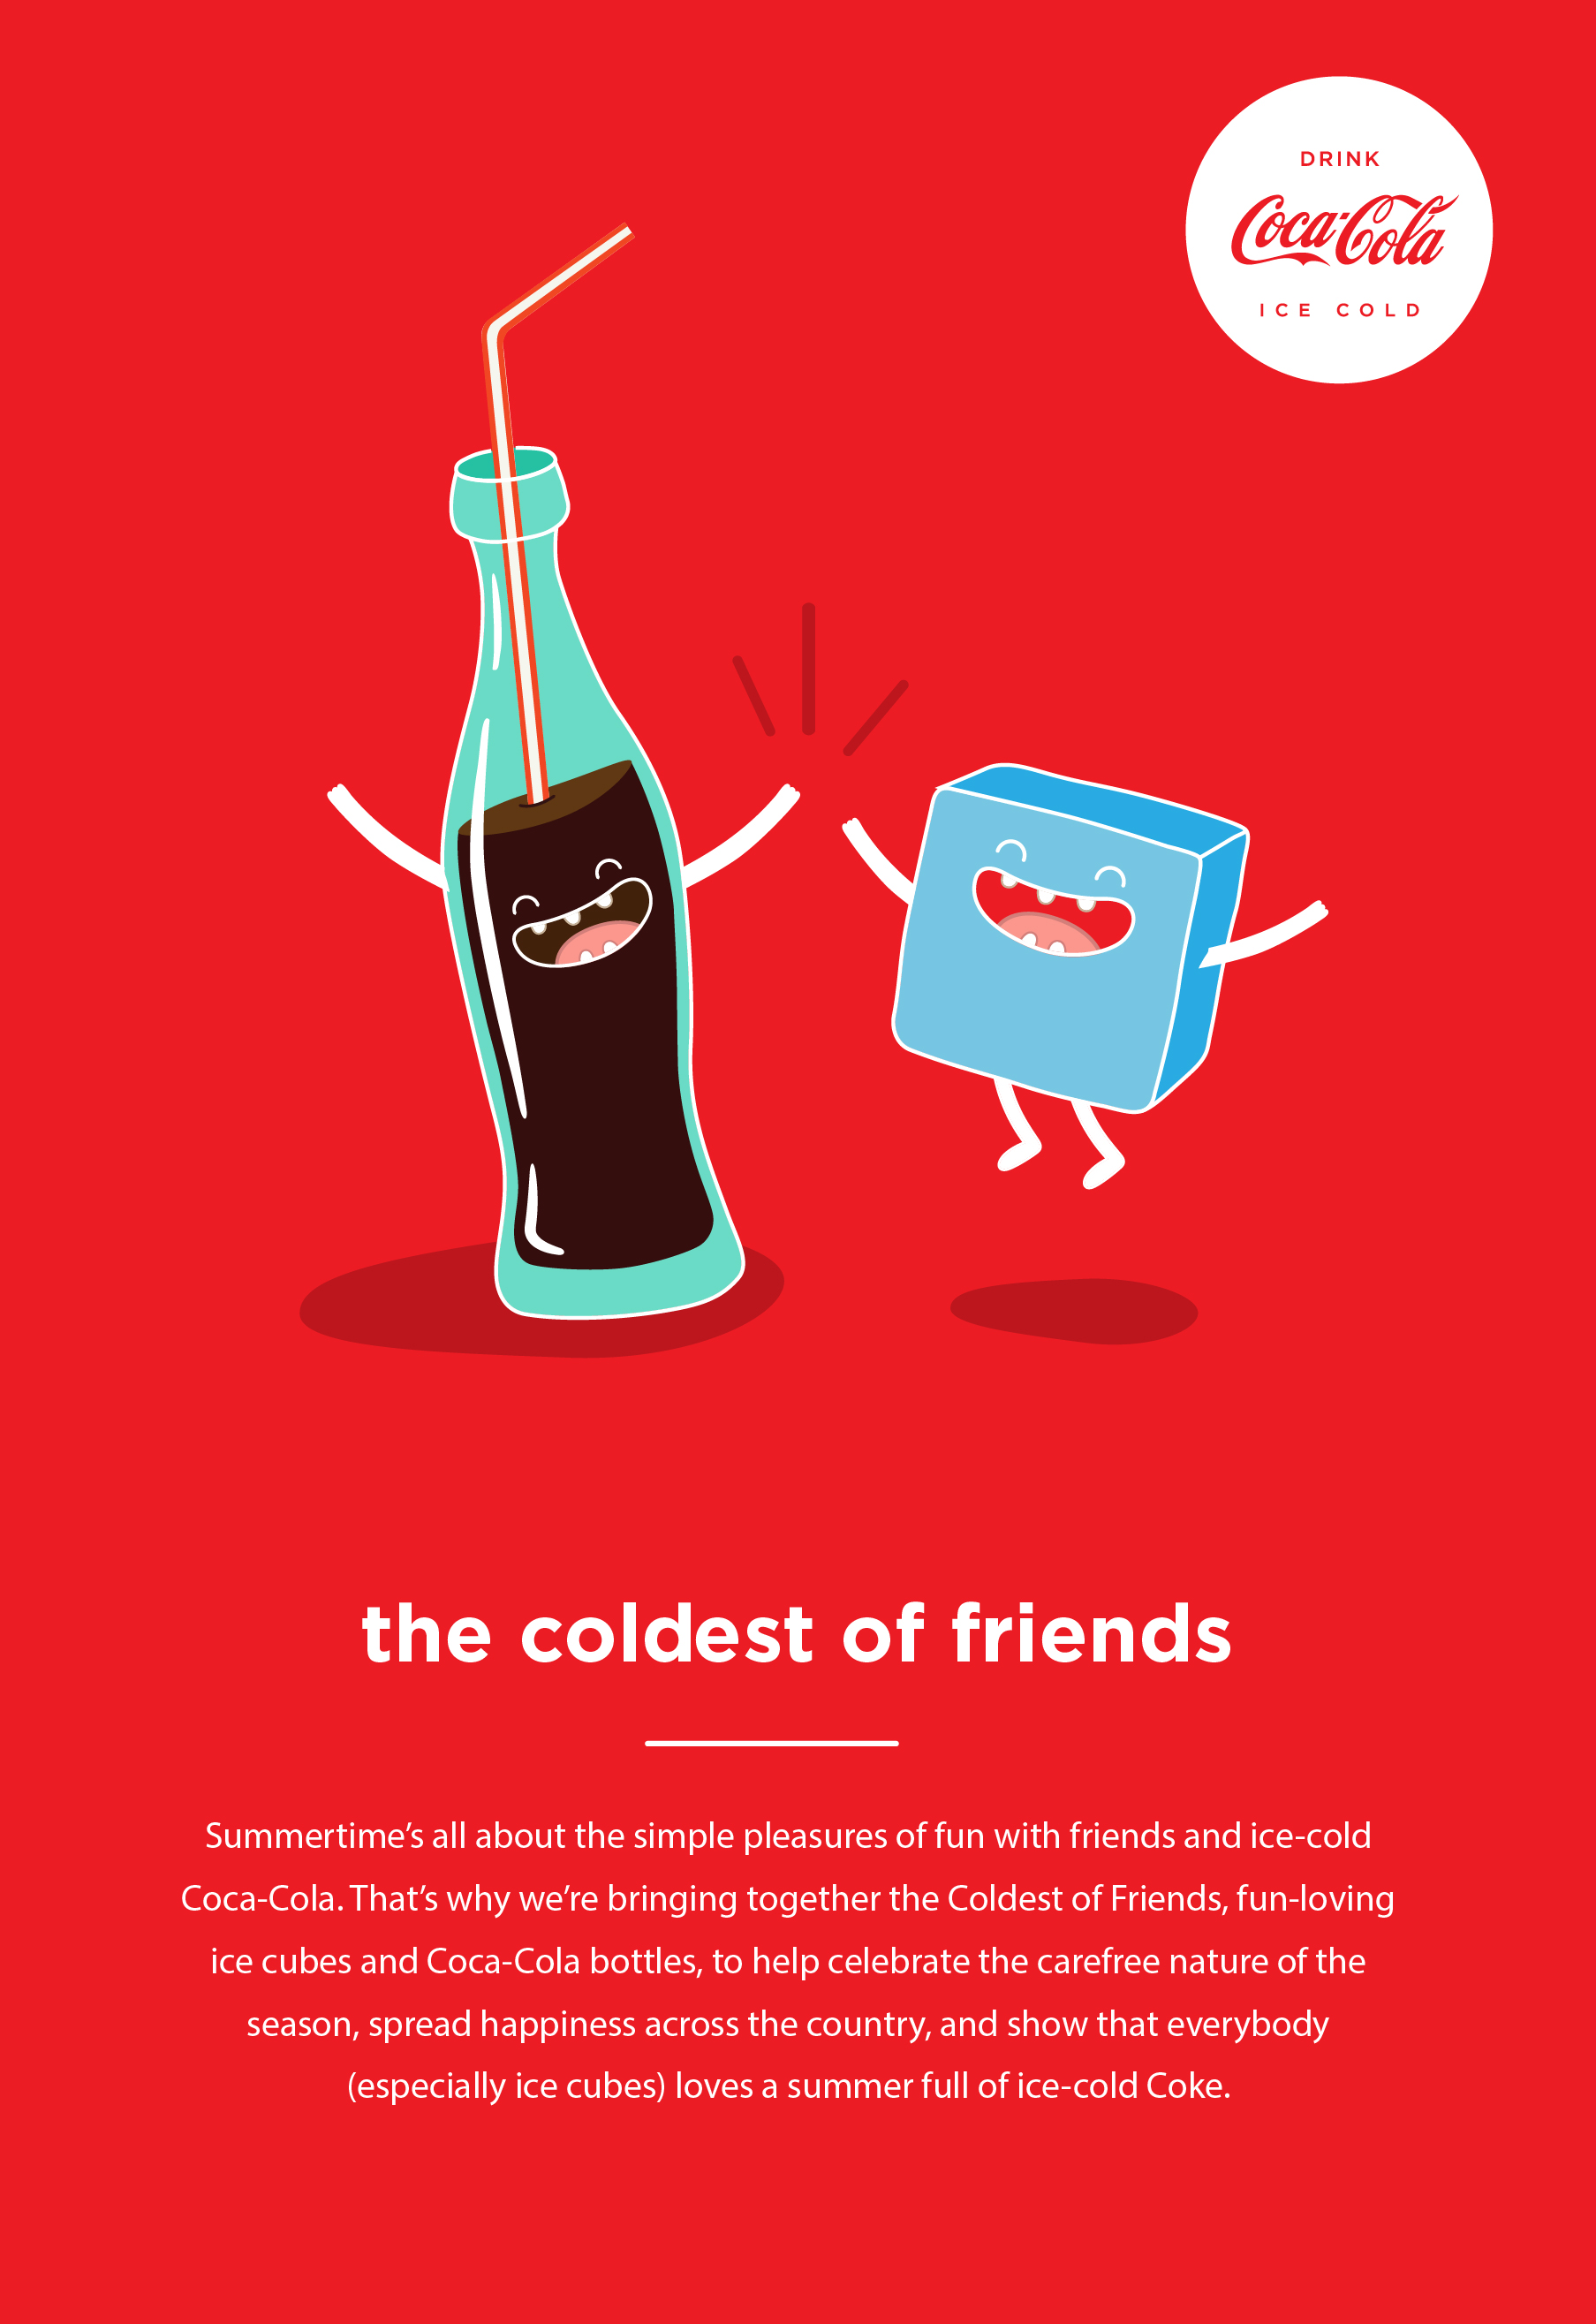 BRANDING CAMPAIGN - COCA-COLA AND ICE, THE COLDEST OF FRIENDS